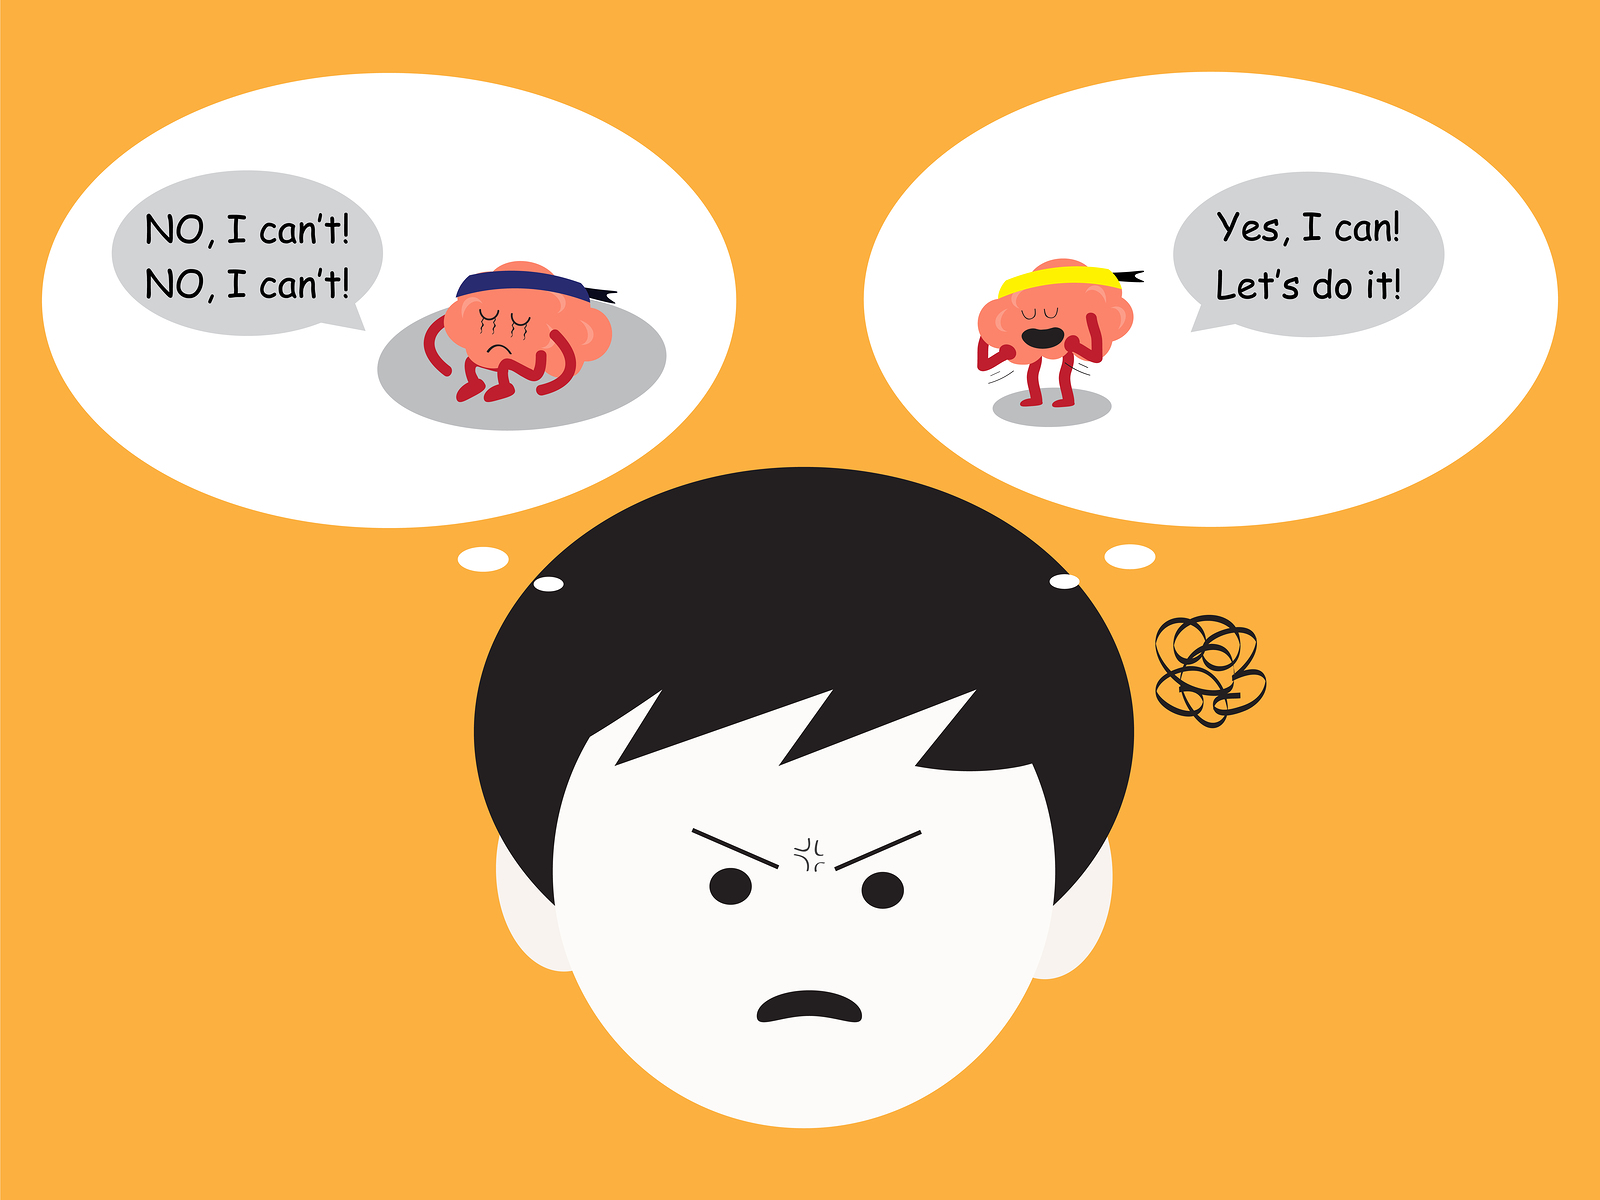 brain cartoon characters vector illustration image showing how man has confused emotion when brains debating together about self confidence (conceptual image about human self confidence)